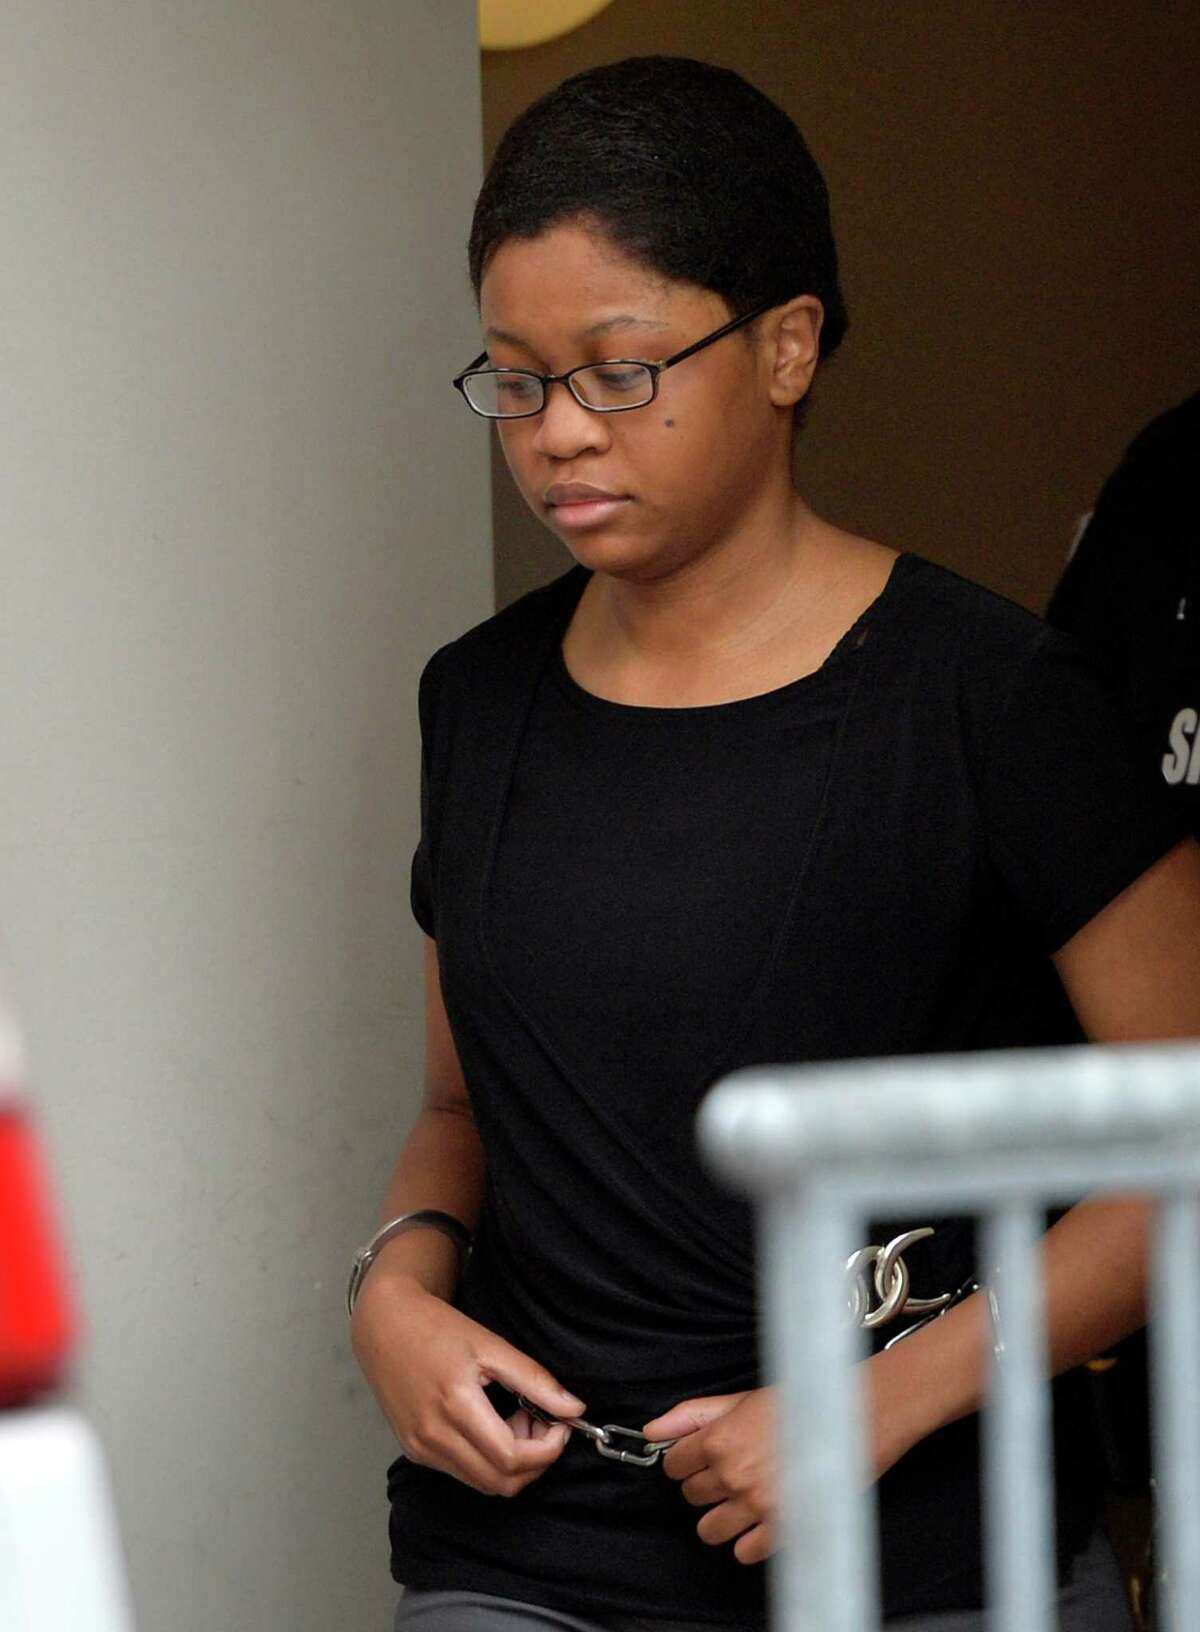 Trinity Copeland is lead from the rear of the Rensselaer County Courthouse in shackles and showing little emotion Wednesday afternoon April 23, 2014 in Troy, N.Y. after being convicted for the murder of her father. (Skip Dickstein / Times Union)